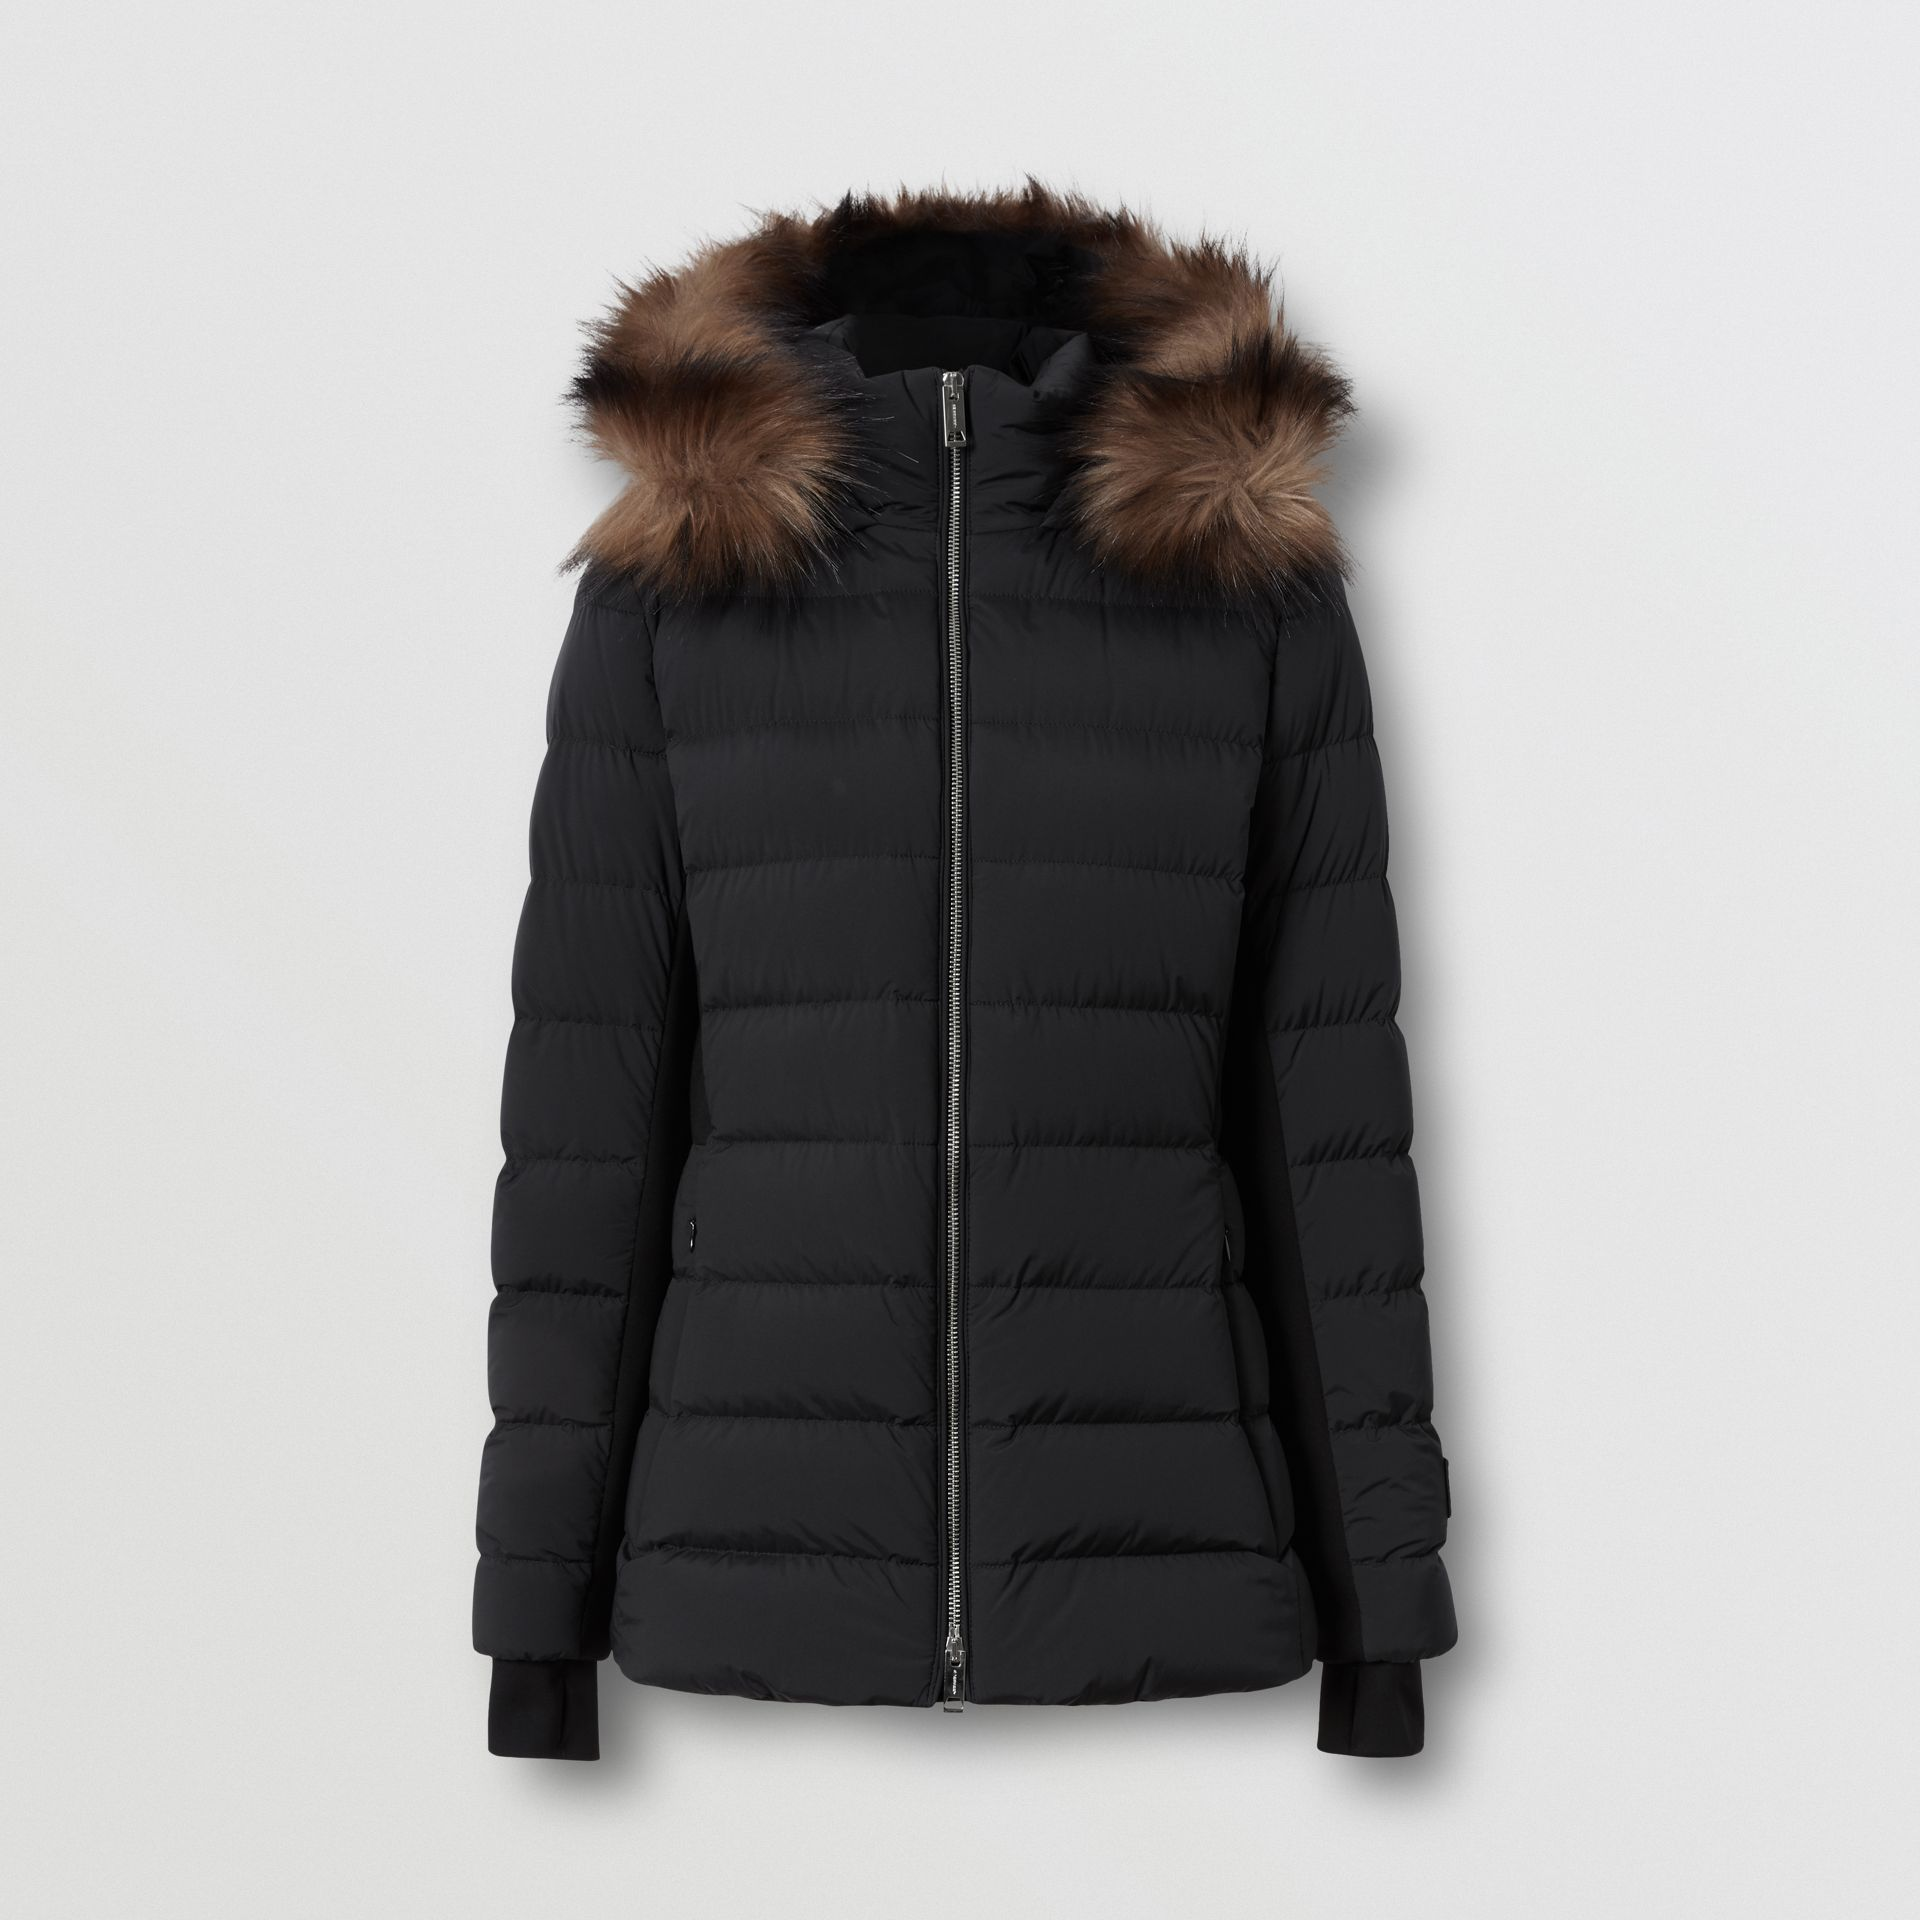 Detachable Faux Fur Trim Hooded Puffer Jacket in Black - Women | Burberry - gallery image 3